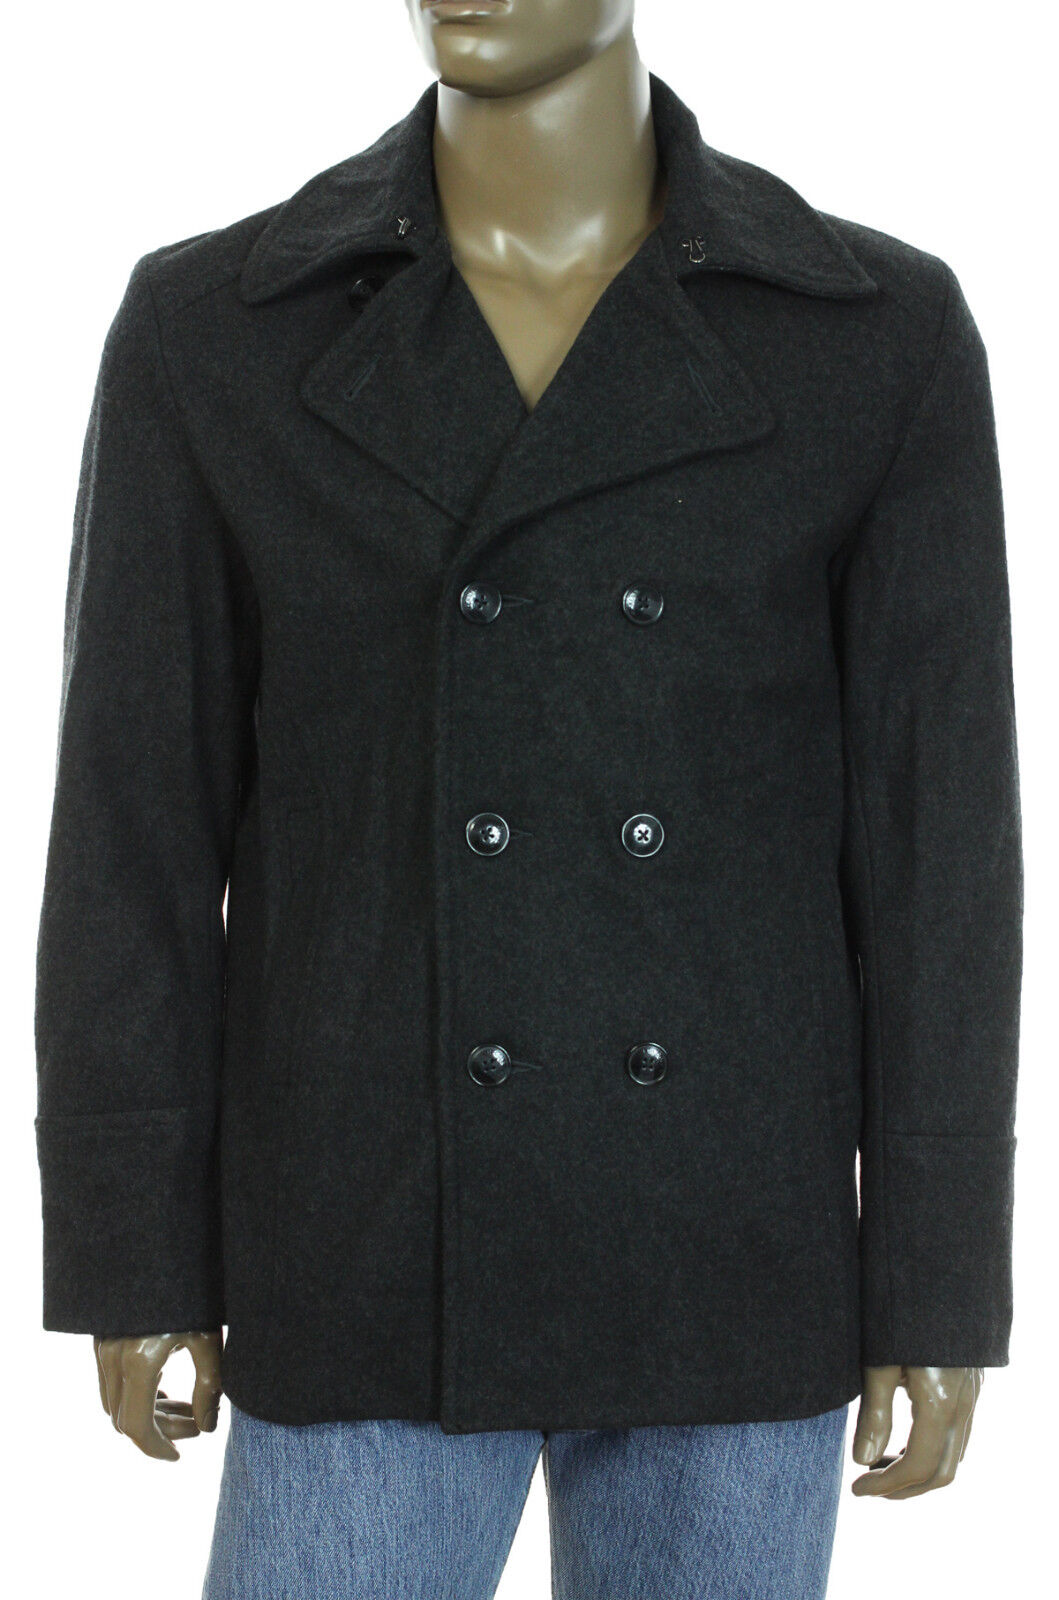 NEW KENNETH COLE REACTION DOUBLE BREASTED CHARCOAL WOOL BLEND PEA COAT XL